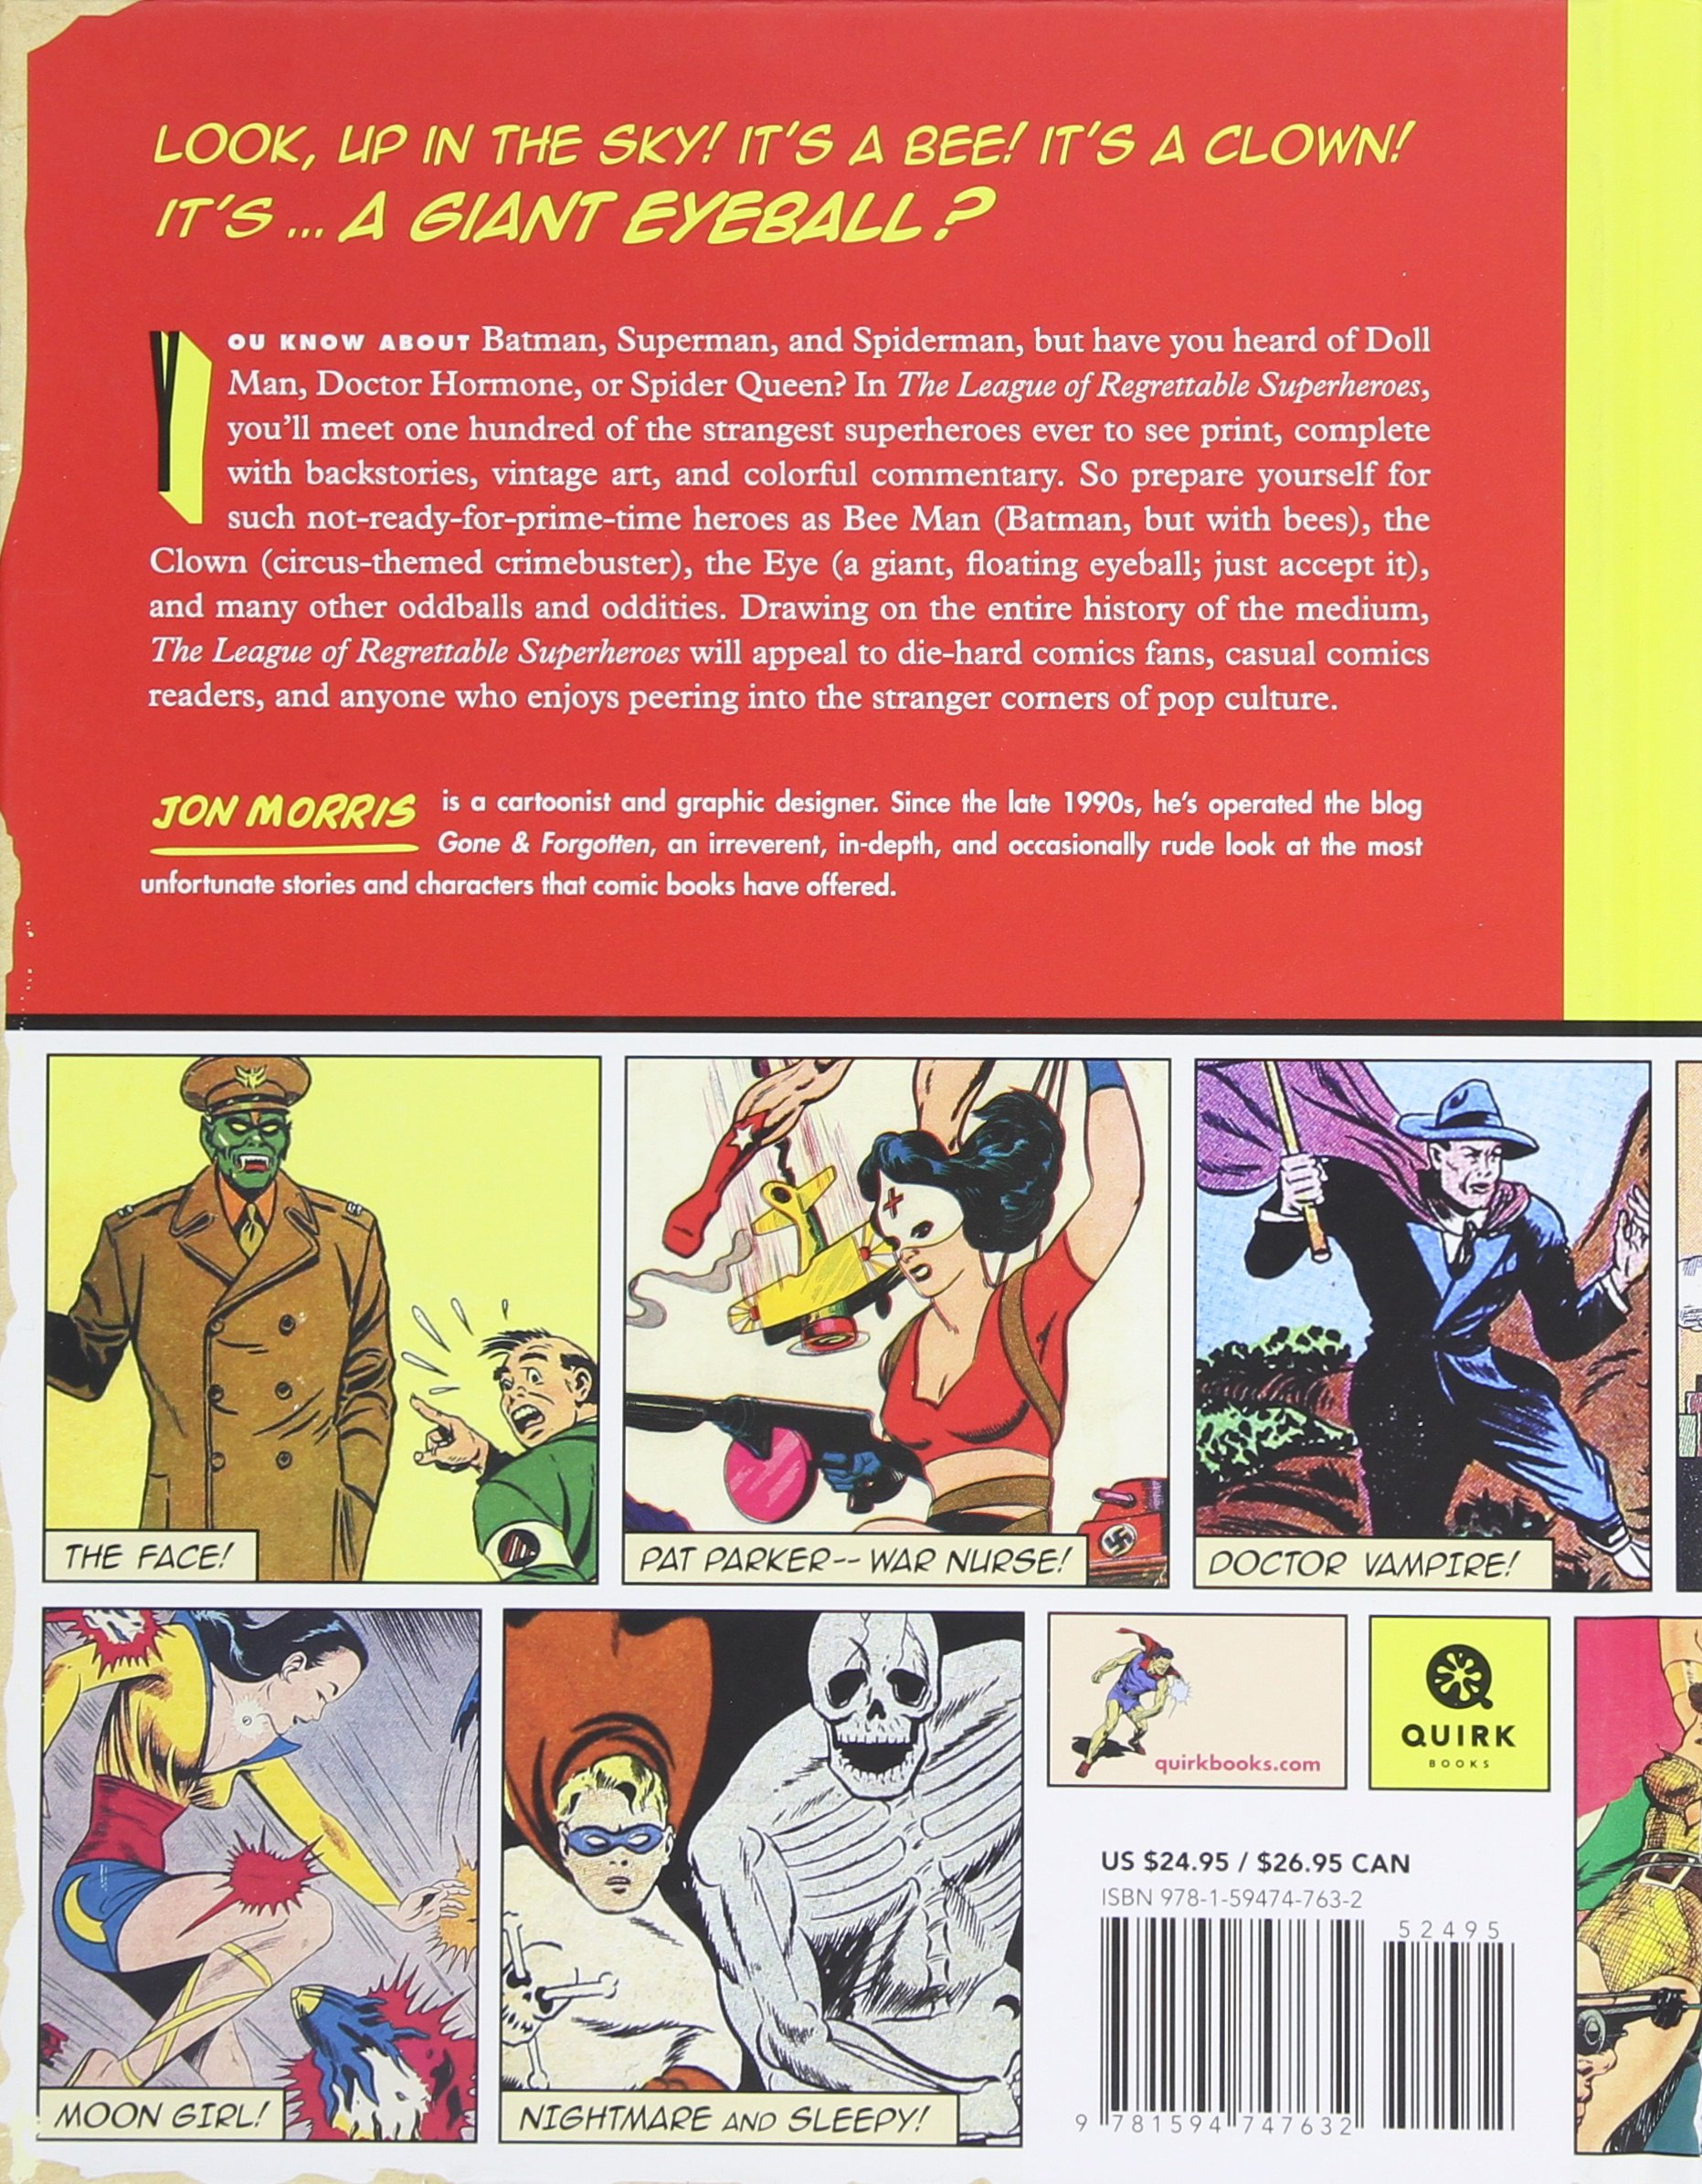 3d24cc4637 The League of Regrettable Superheroes: Half-Baked Heroes from Comic Book  History: Jon Morris: 9781594747632: Amazon.com: Books